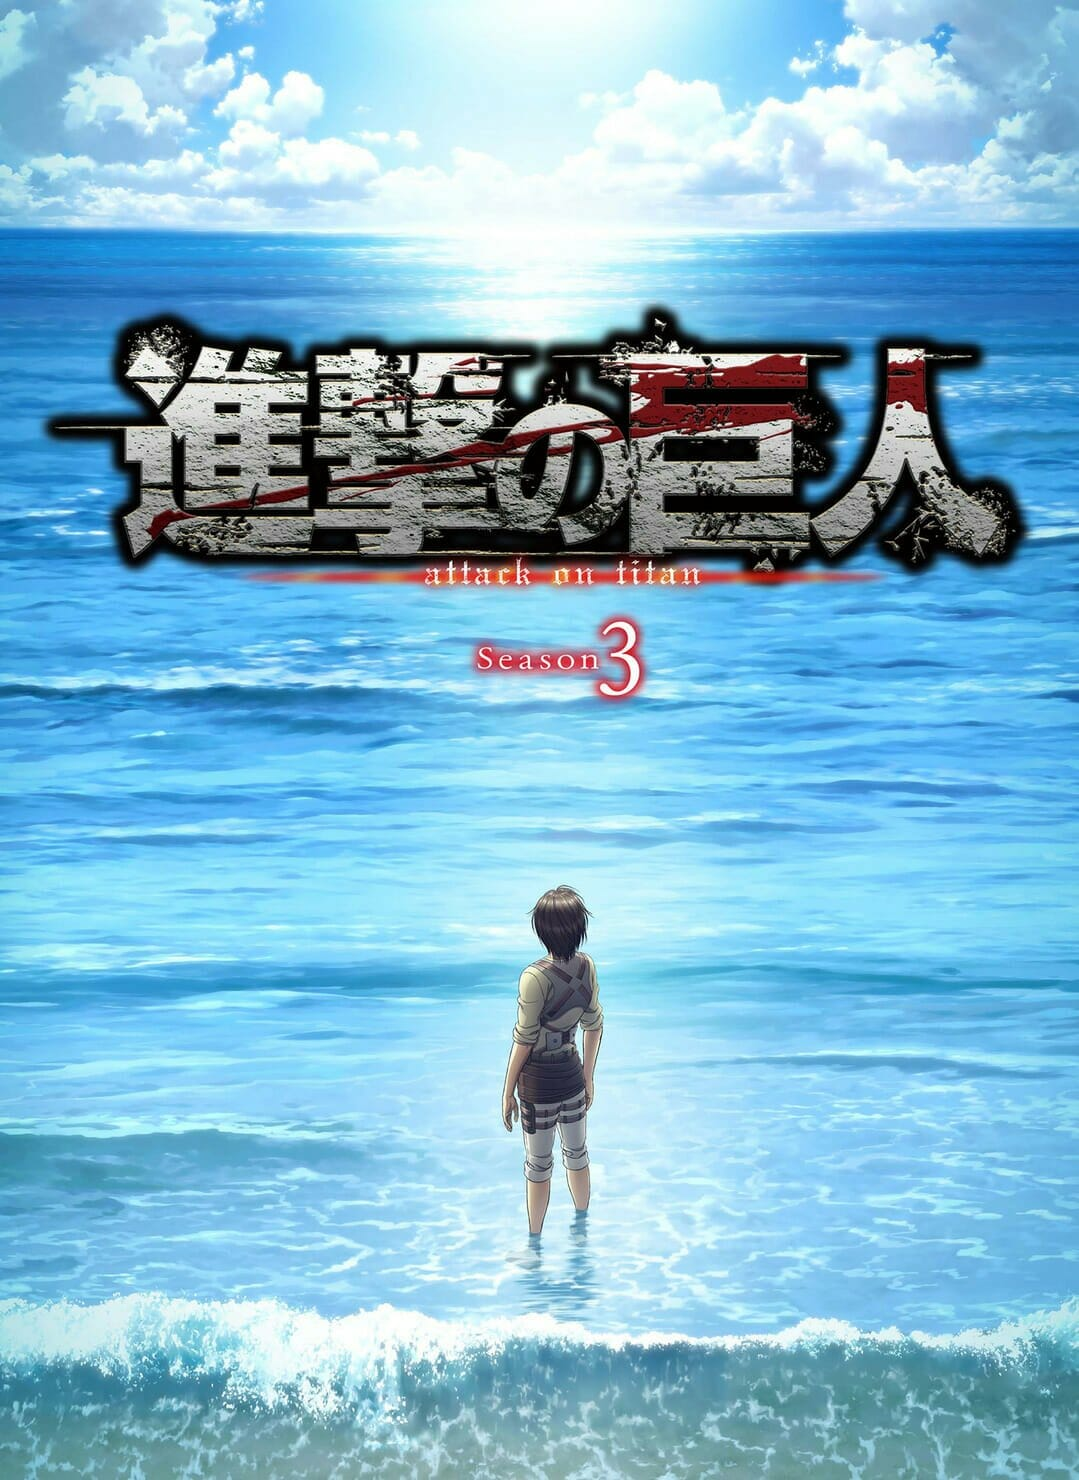 Attack on Titan Season 3 Cour 2 Visual